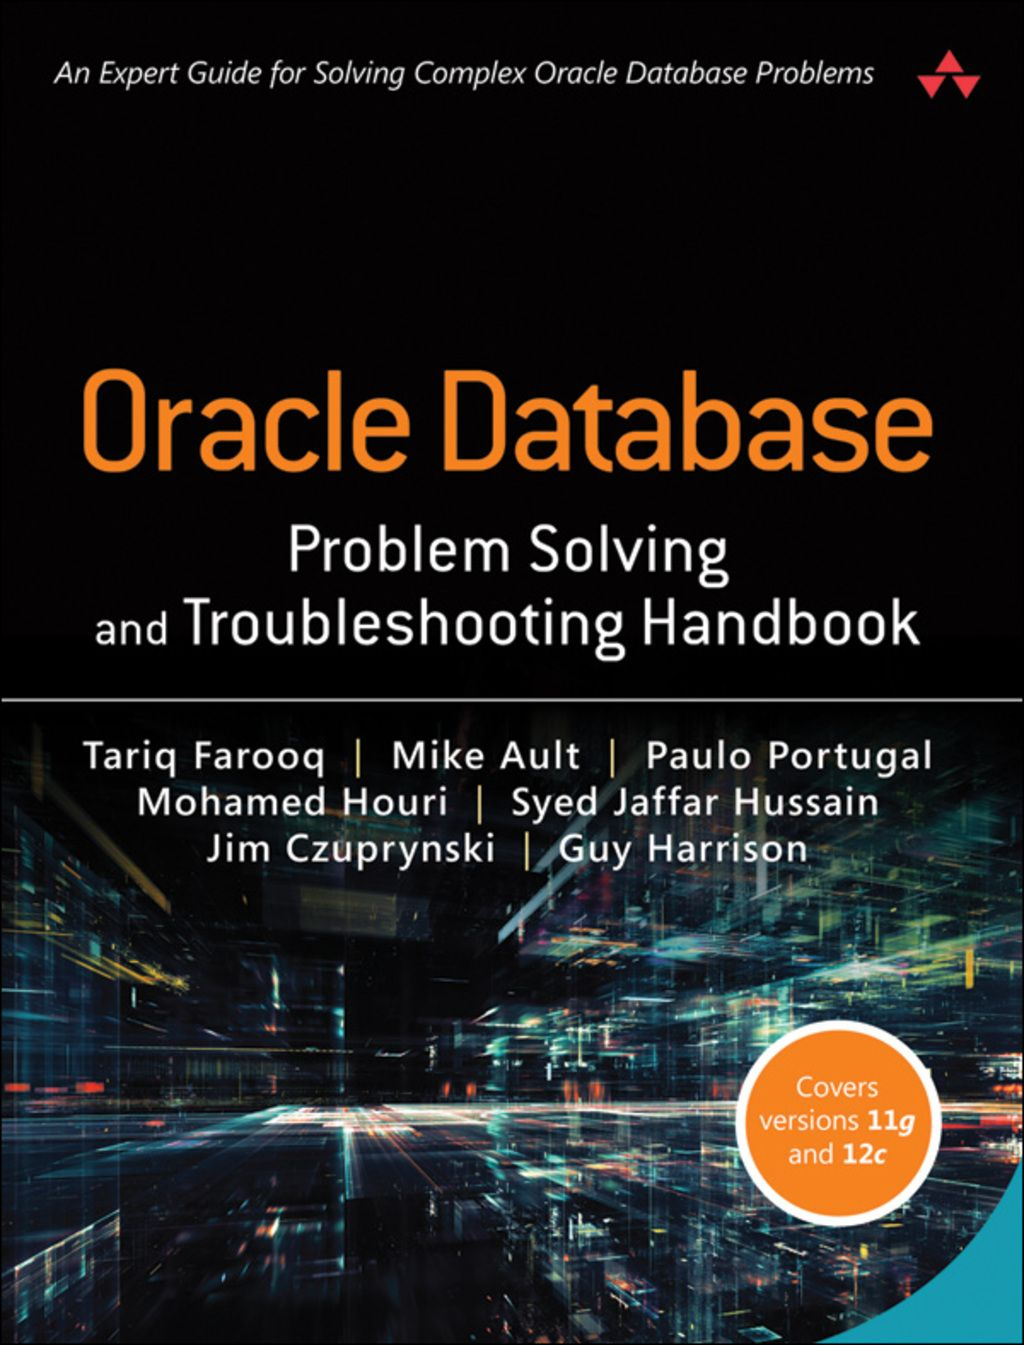 Oracle Database Problem Solving and Troubleshooting